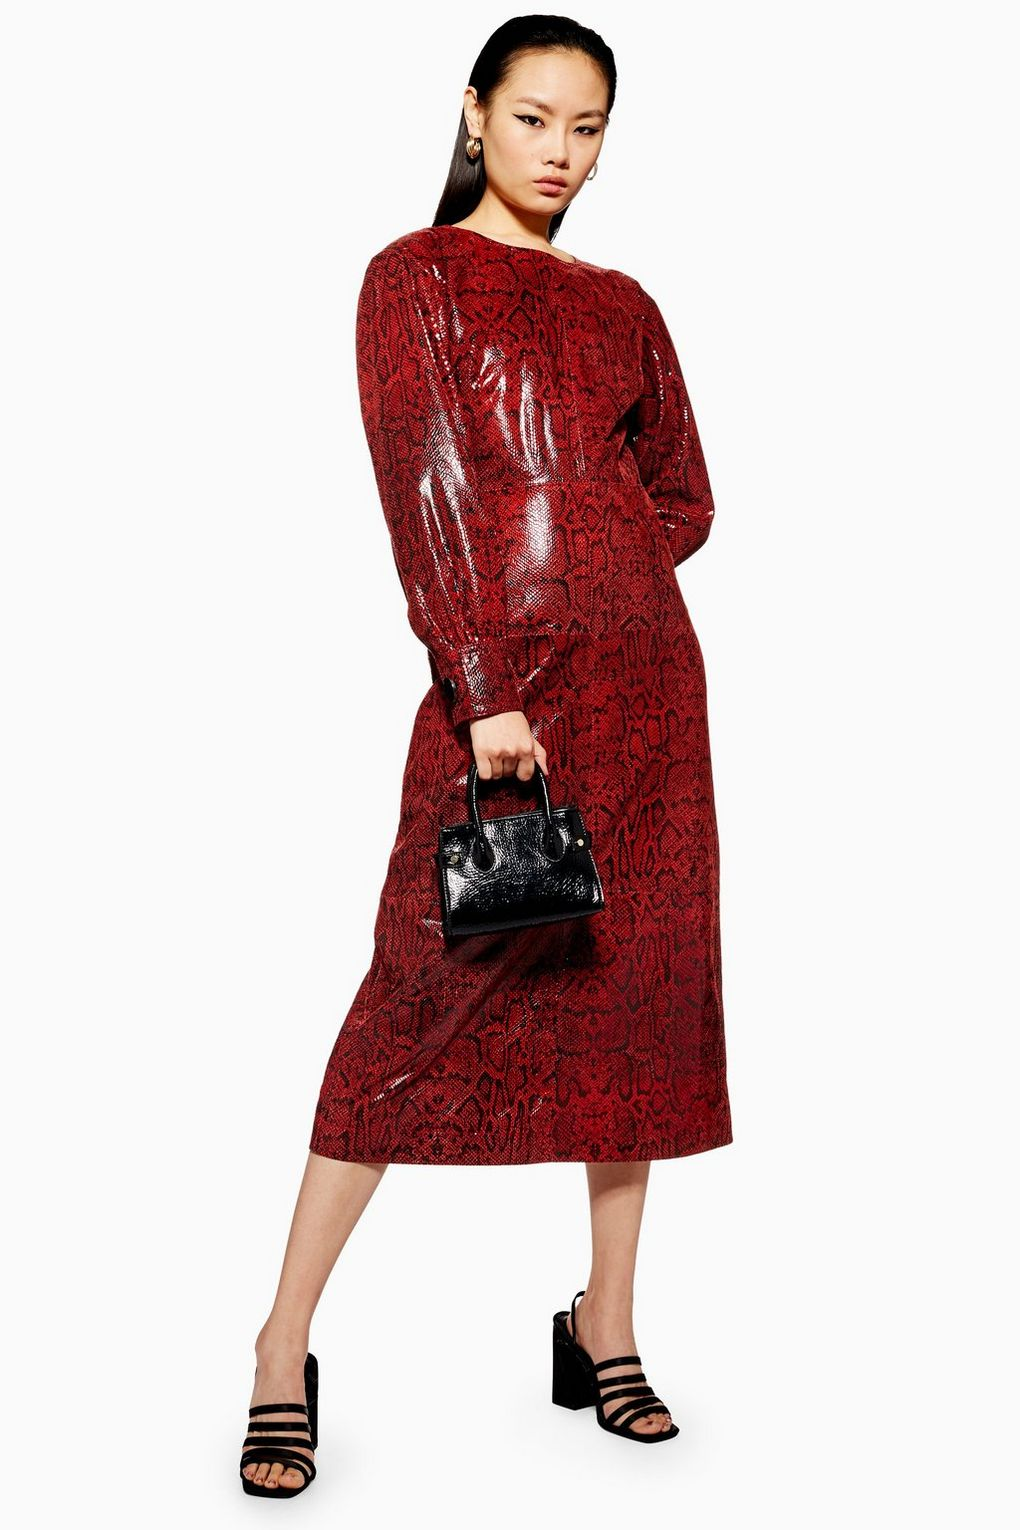 Snake Leather Red Black Midi Dress